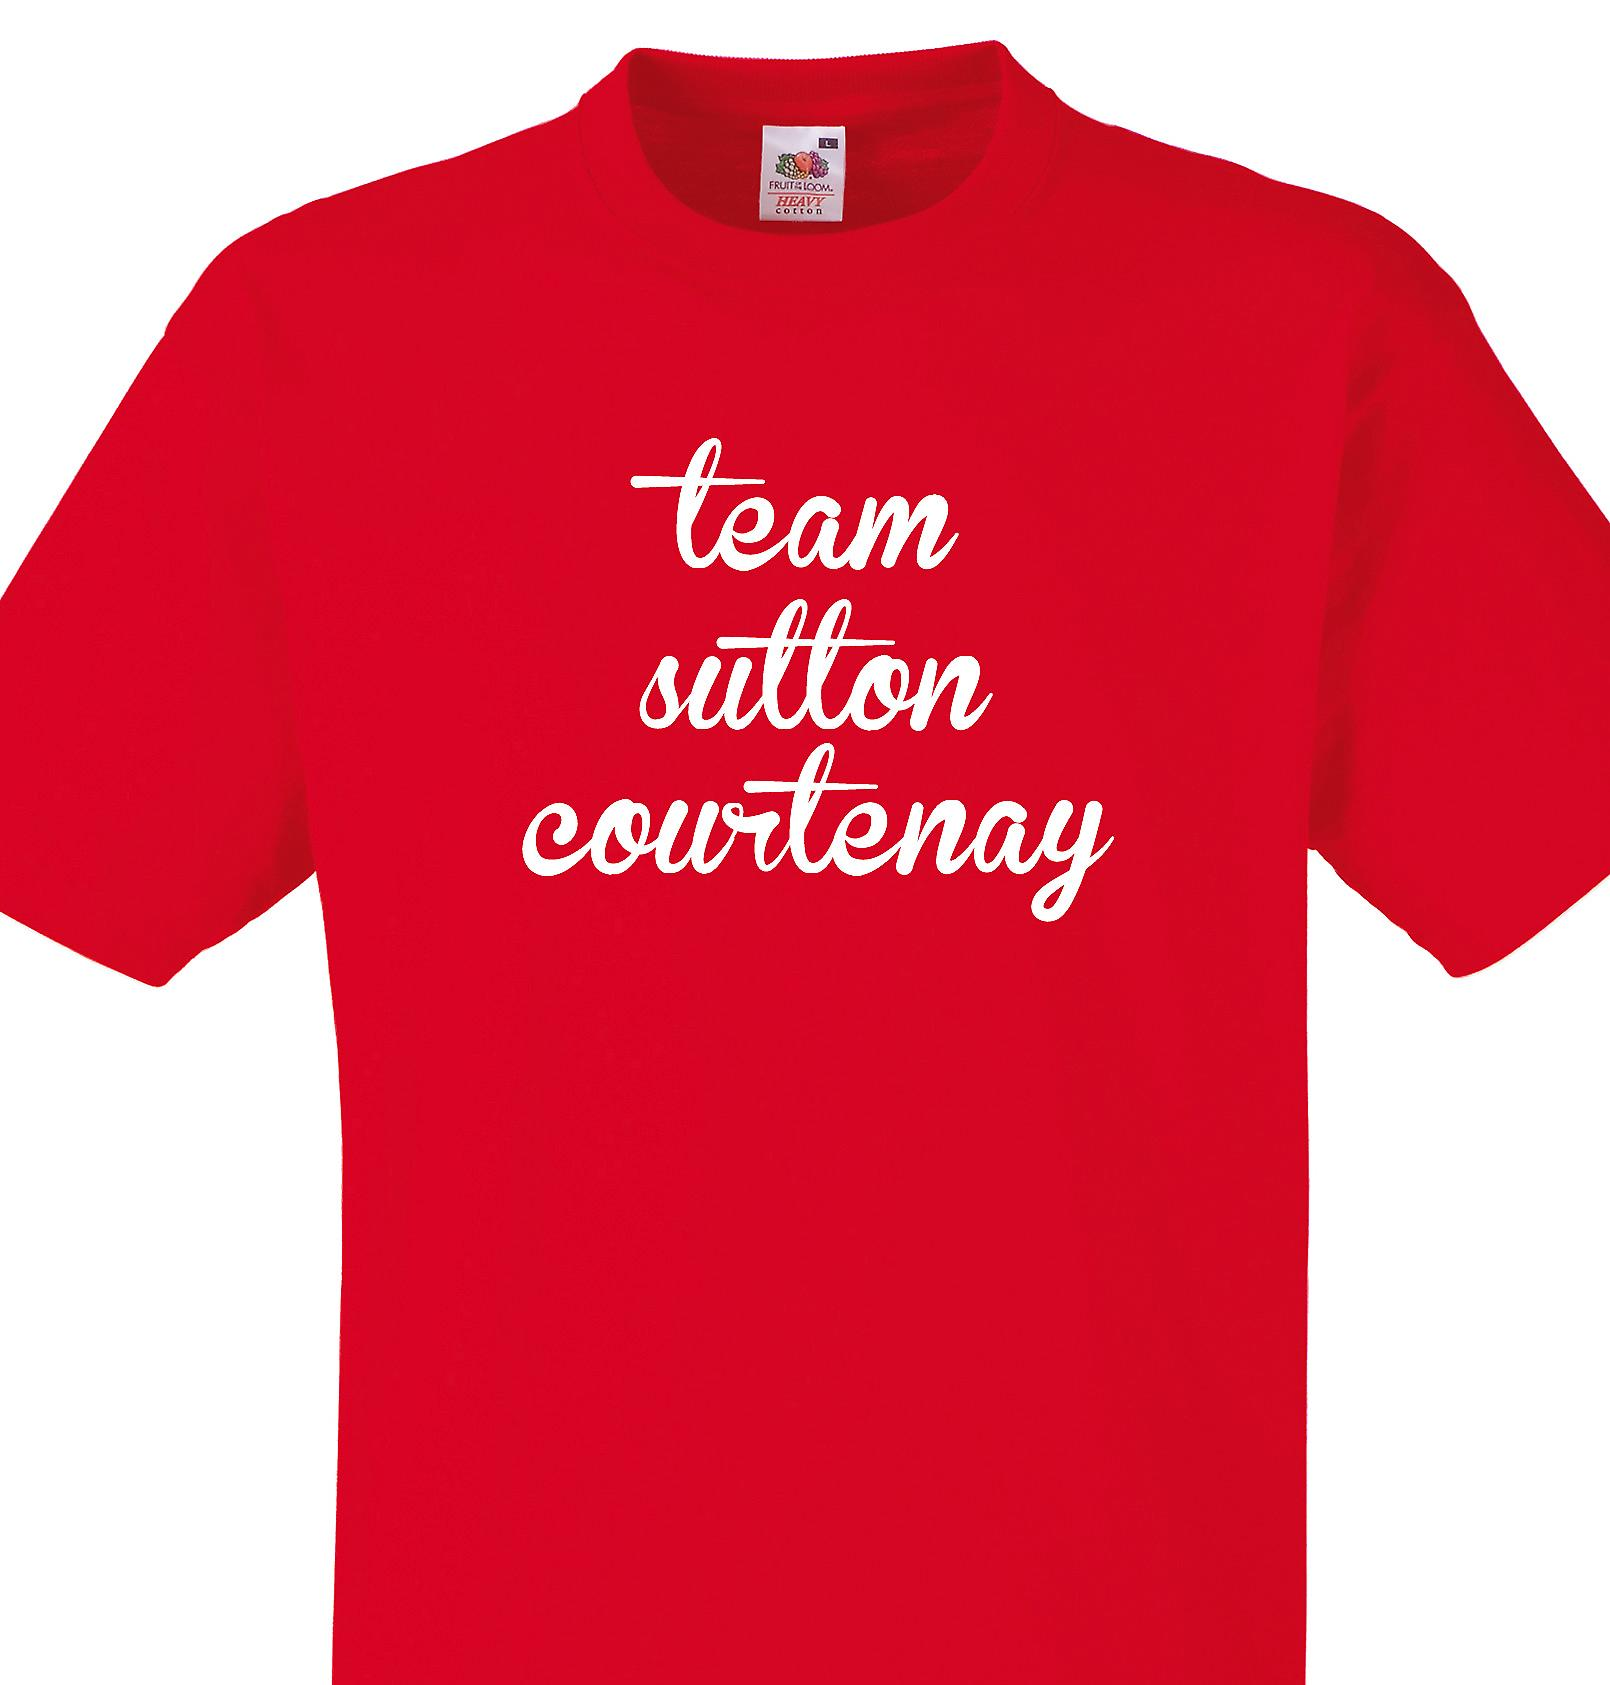 Team Sutton courtenay Red T shirt